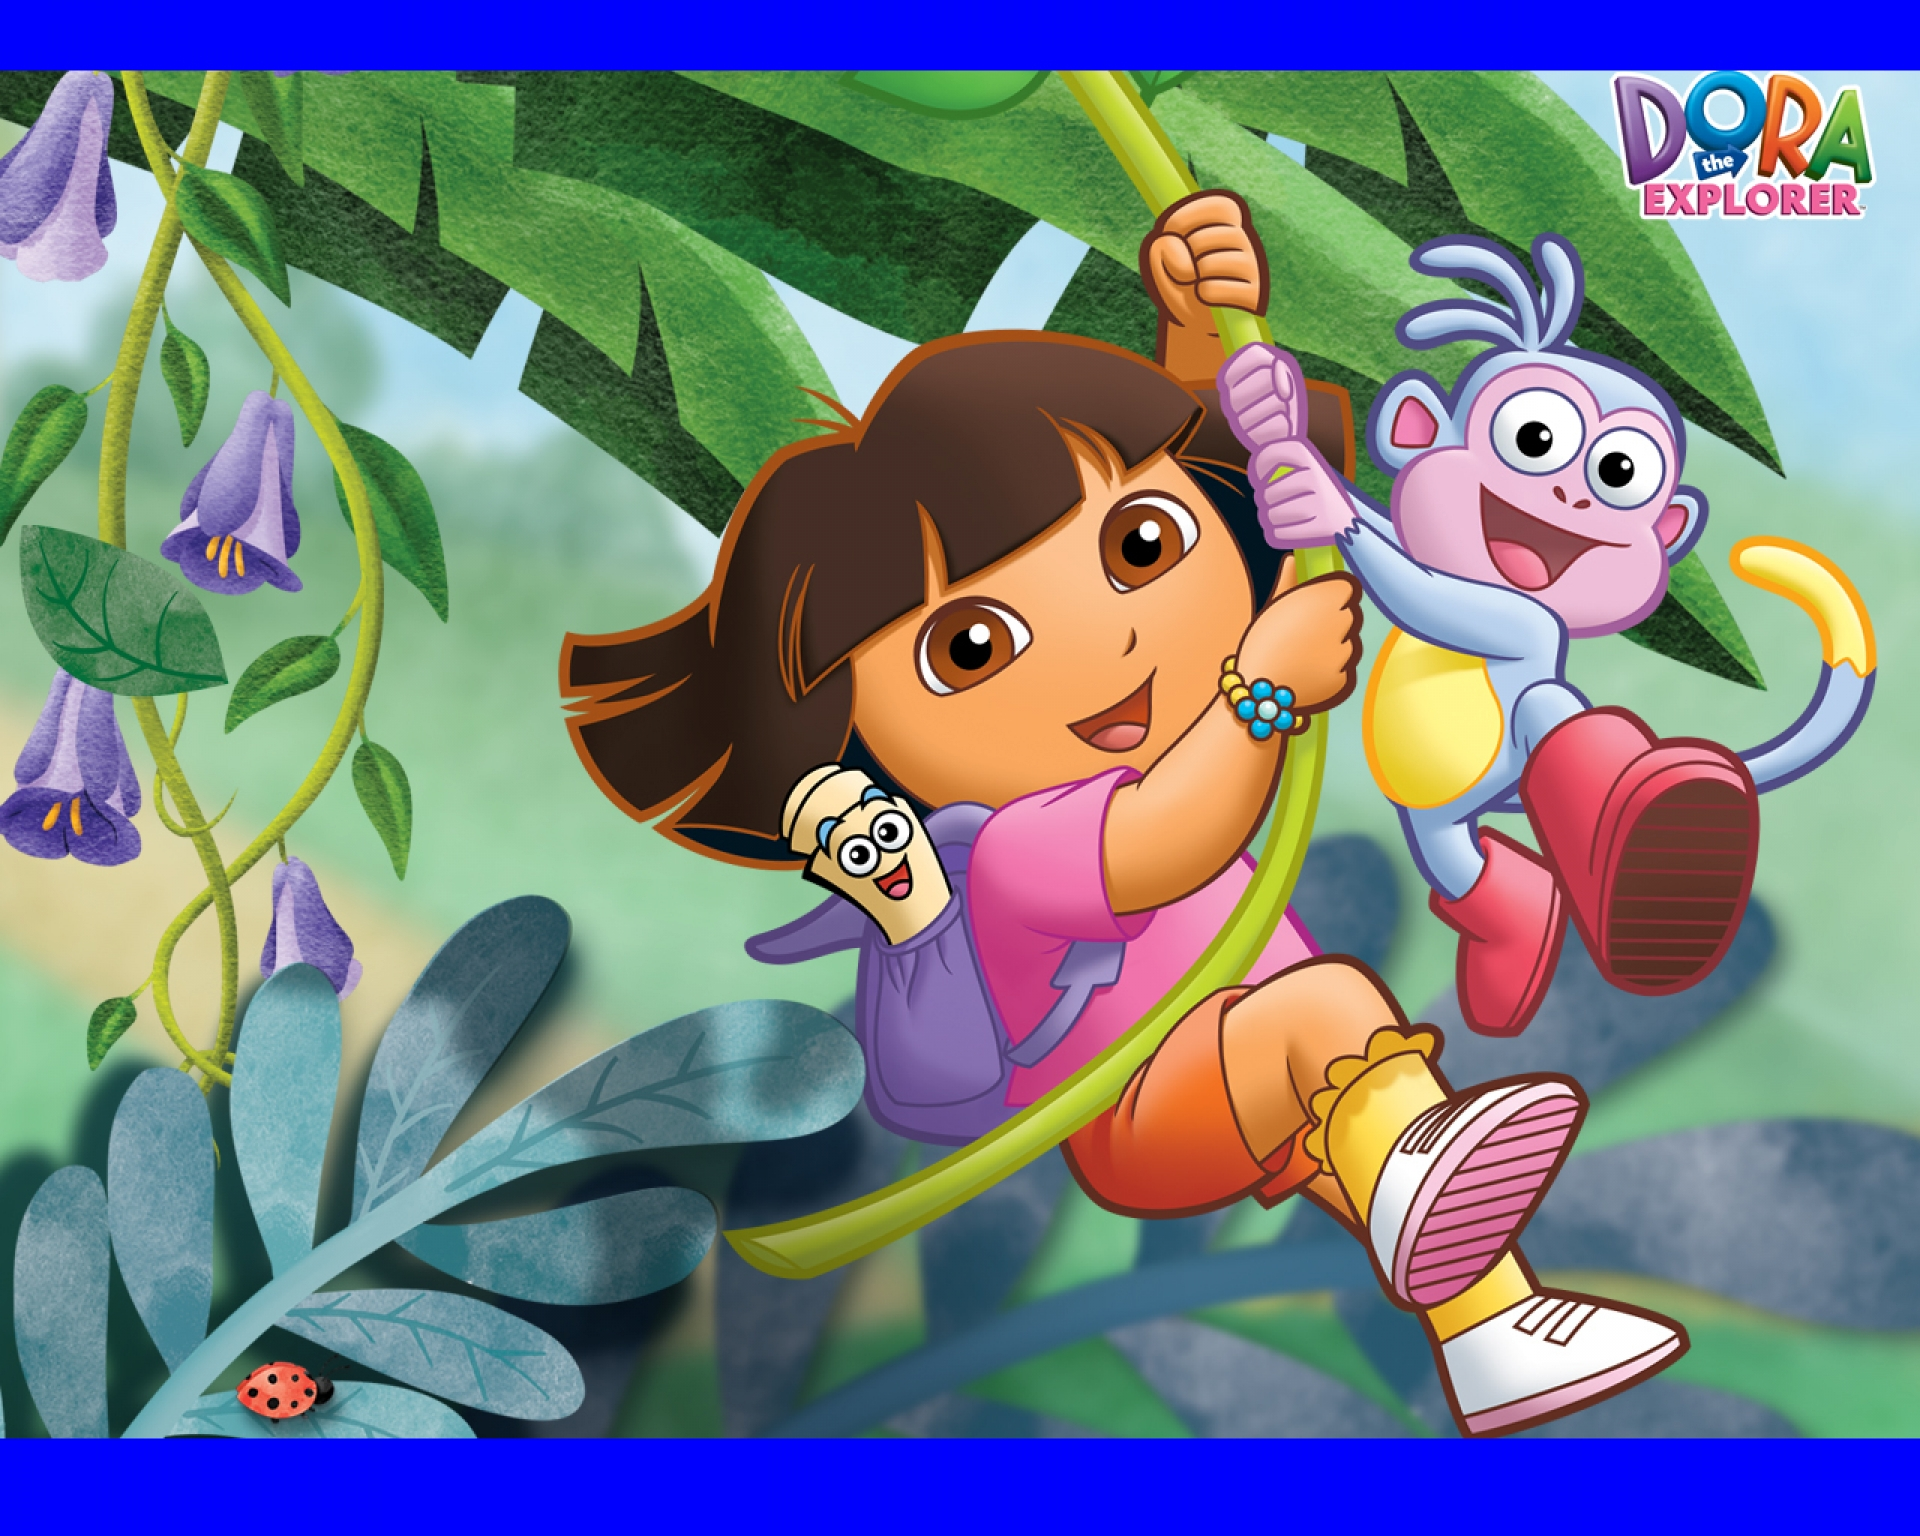 Dora the Explorer 3 wallpaper 1920x1536 184649 1920x1536